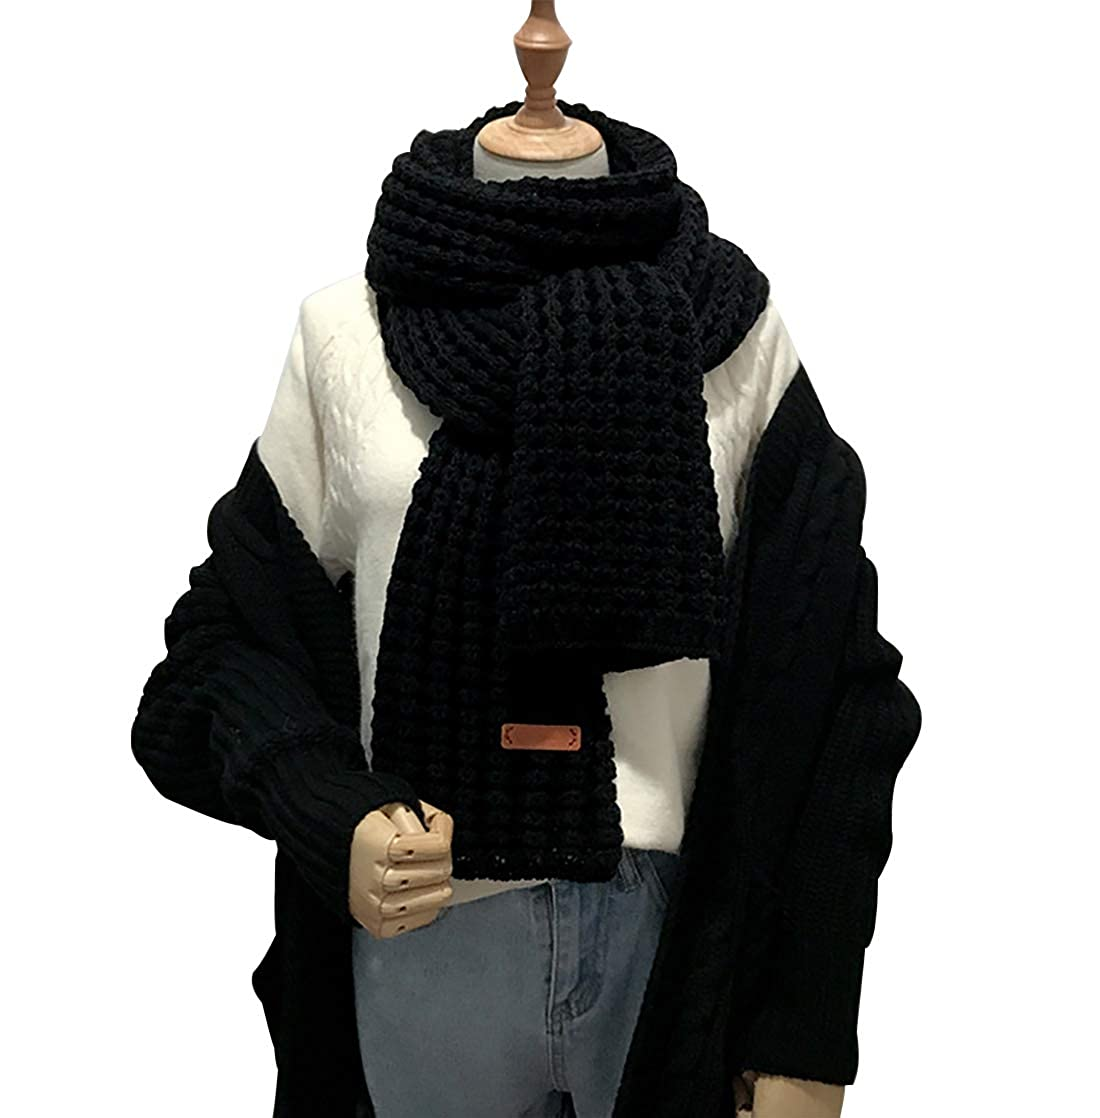 Black Winter Knit Warm Scarves Fashion Scarf Long Neck Warmer for Women Girls Men Unisex